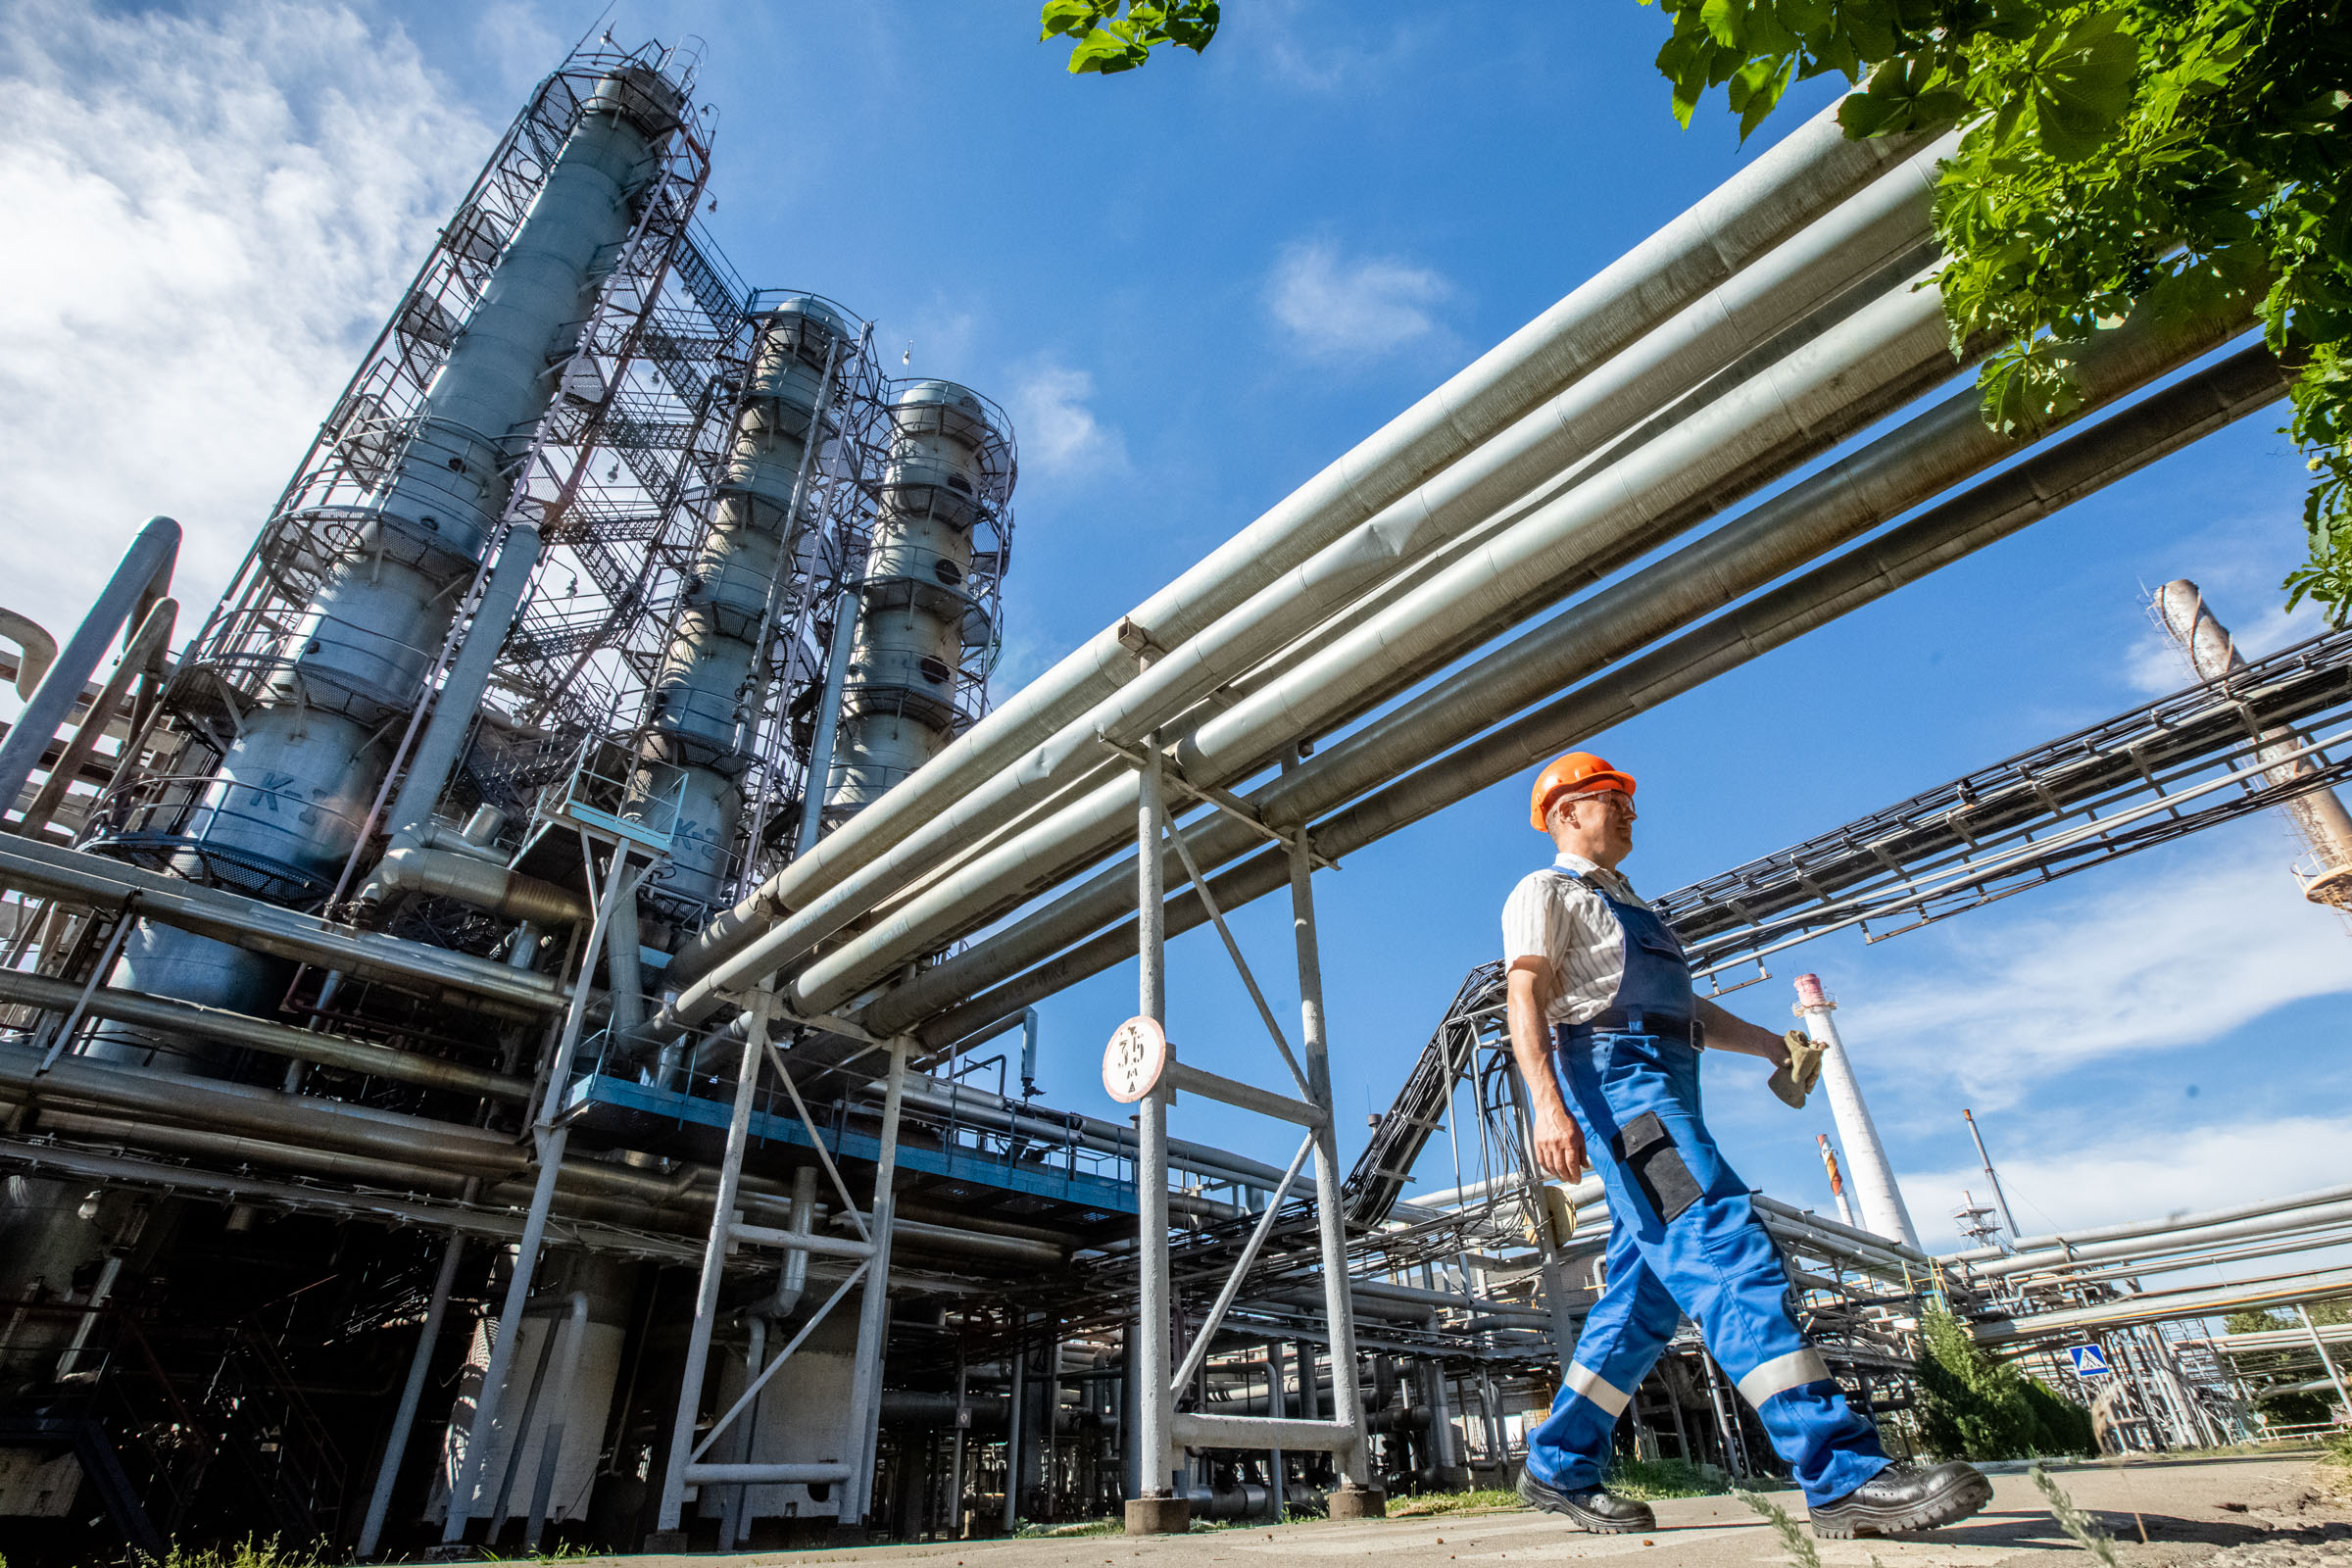 Ukrgasvydobuvannya's production facilities (Oil Division) completed a complex of scheduled preventive maintenance operations